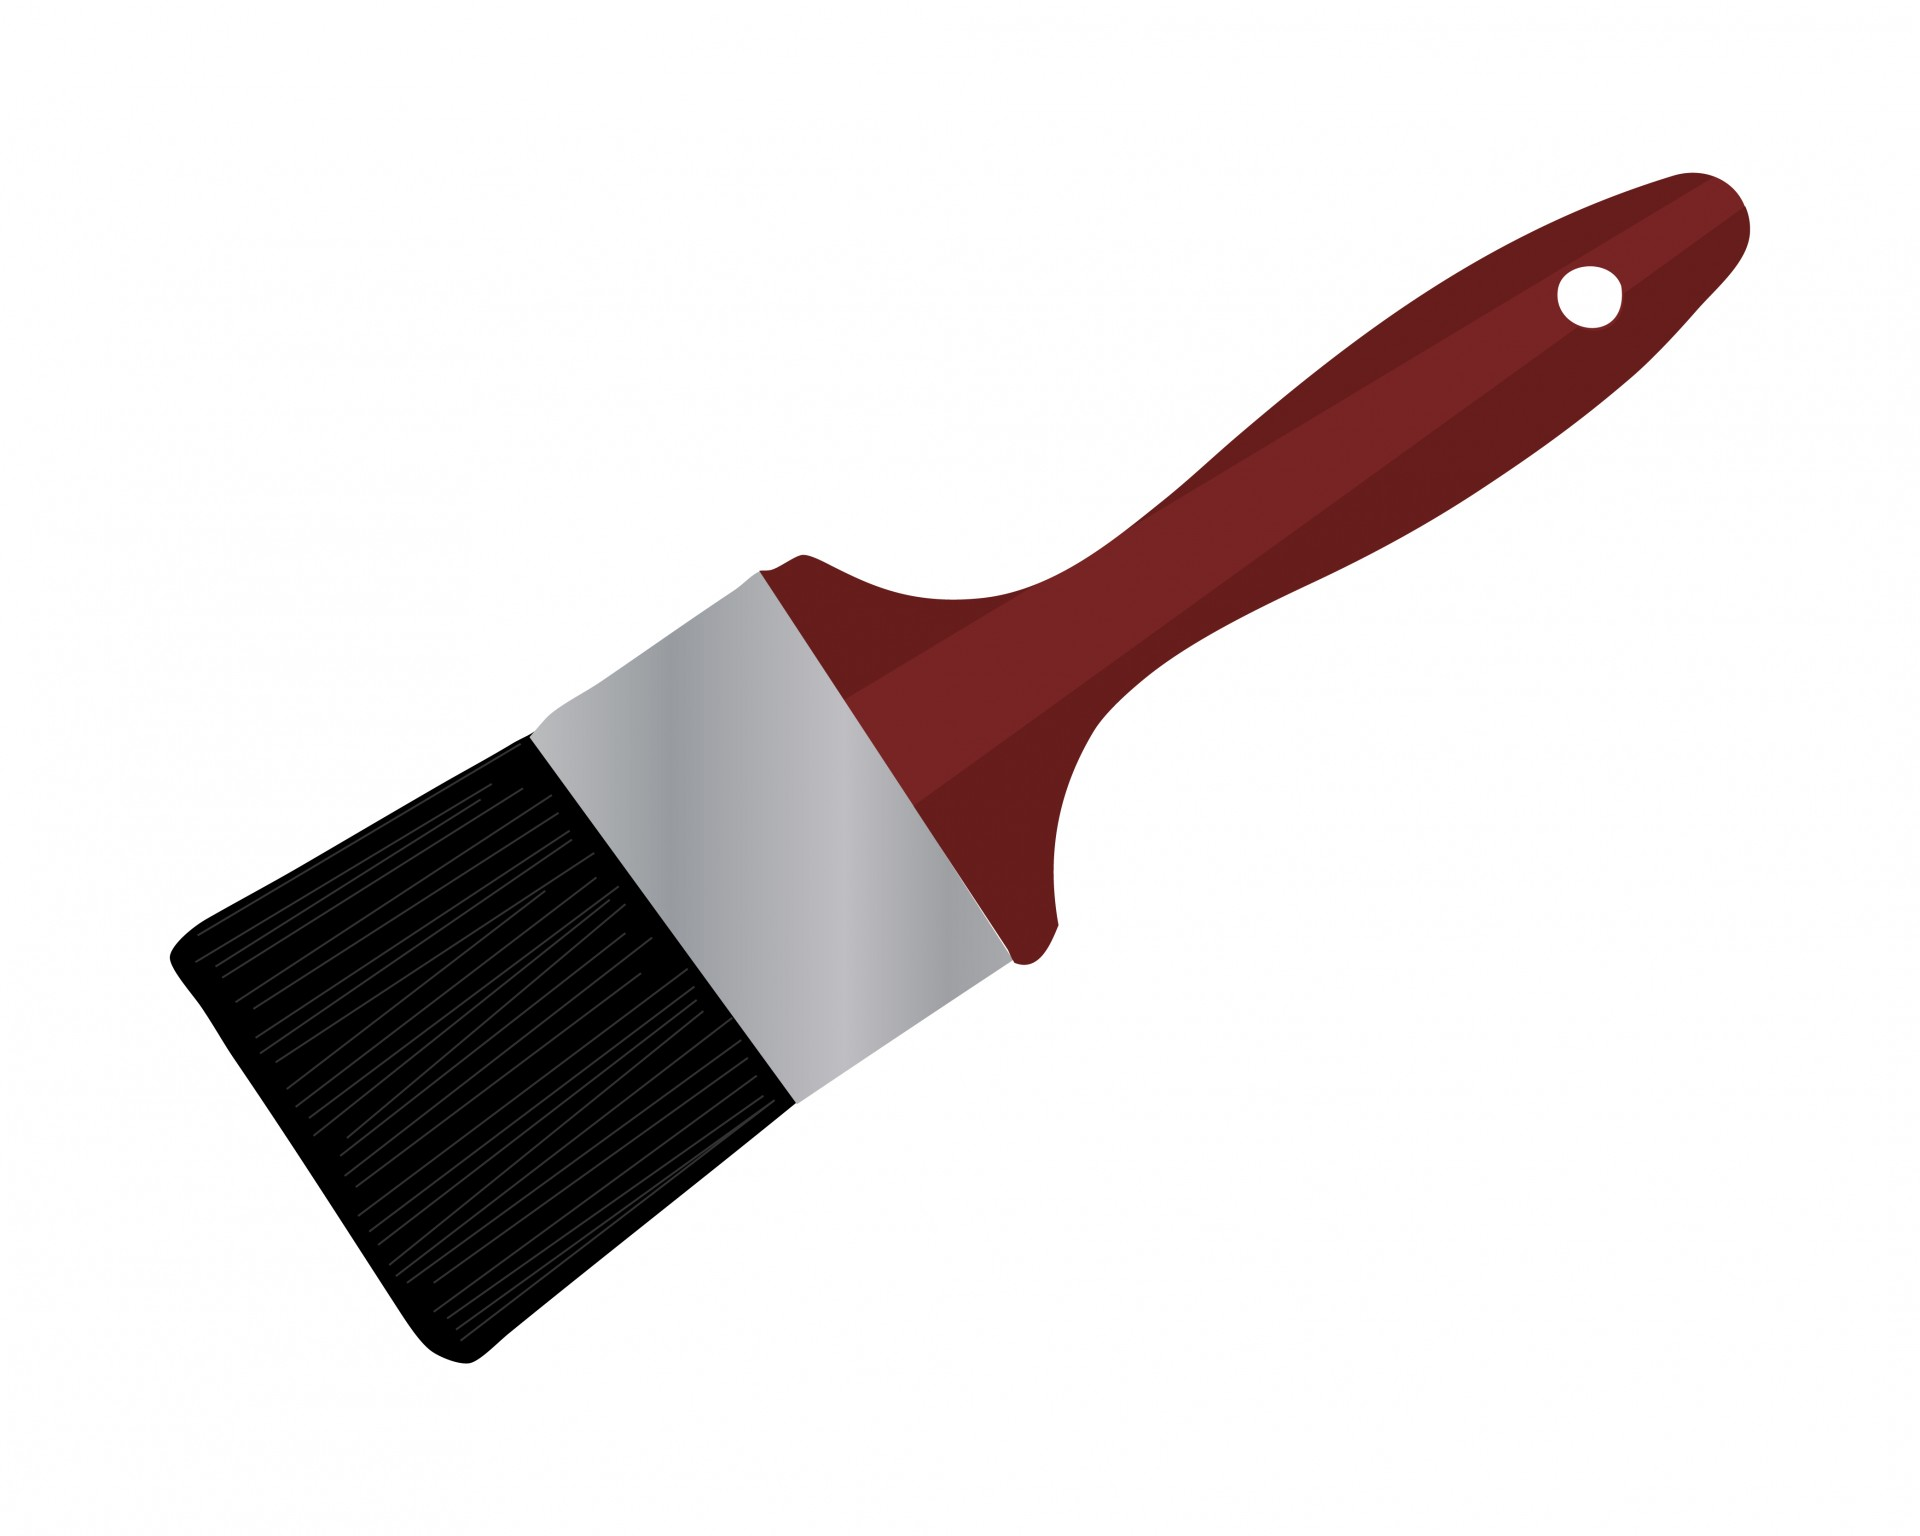 Paint brush free stock. Paintbrush clipart